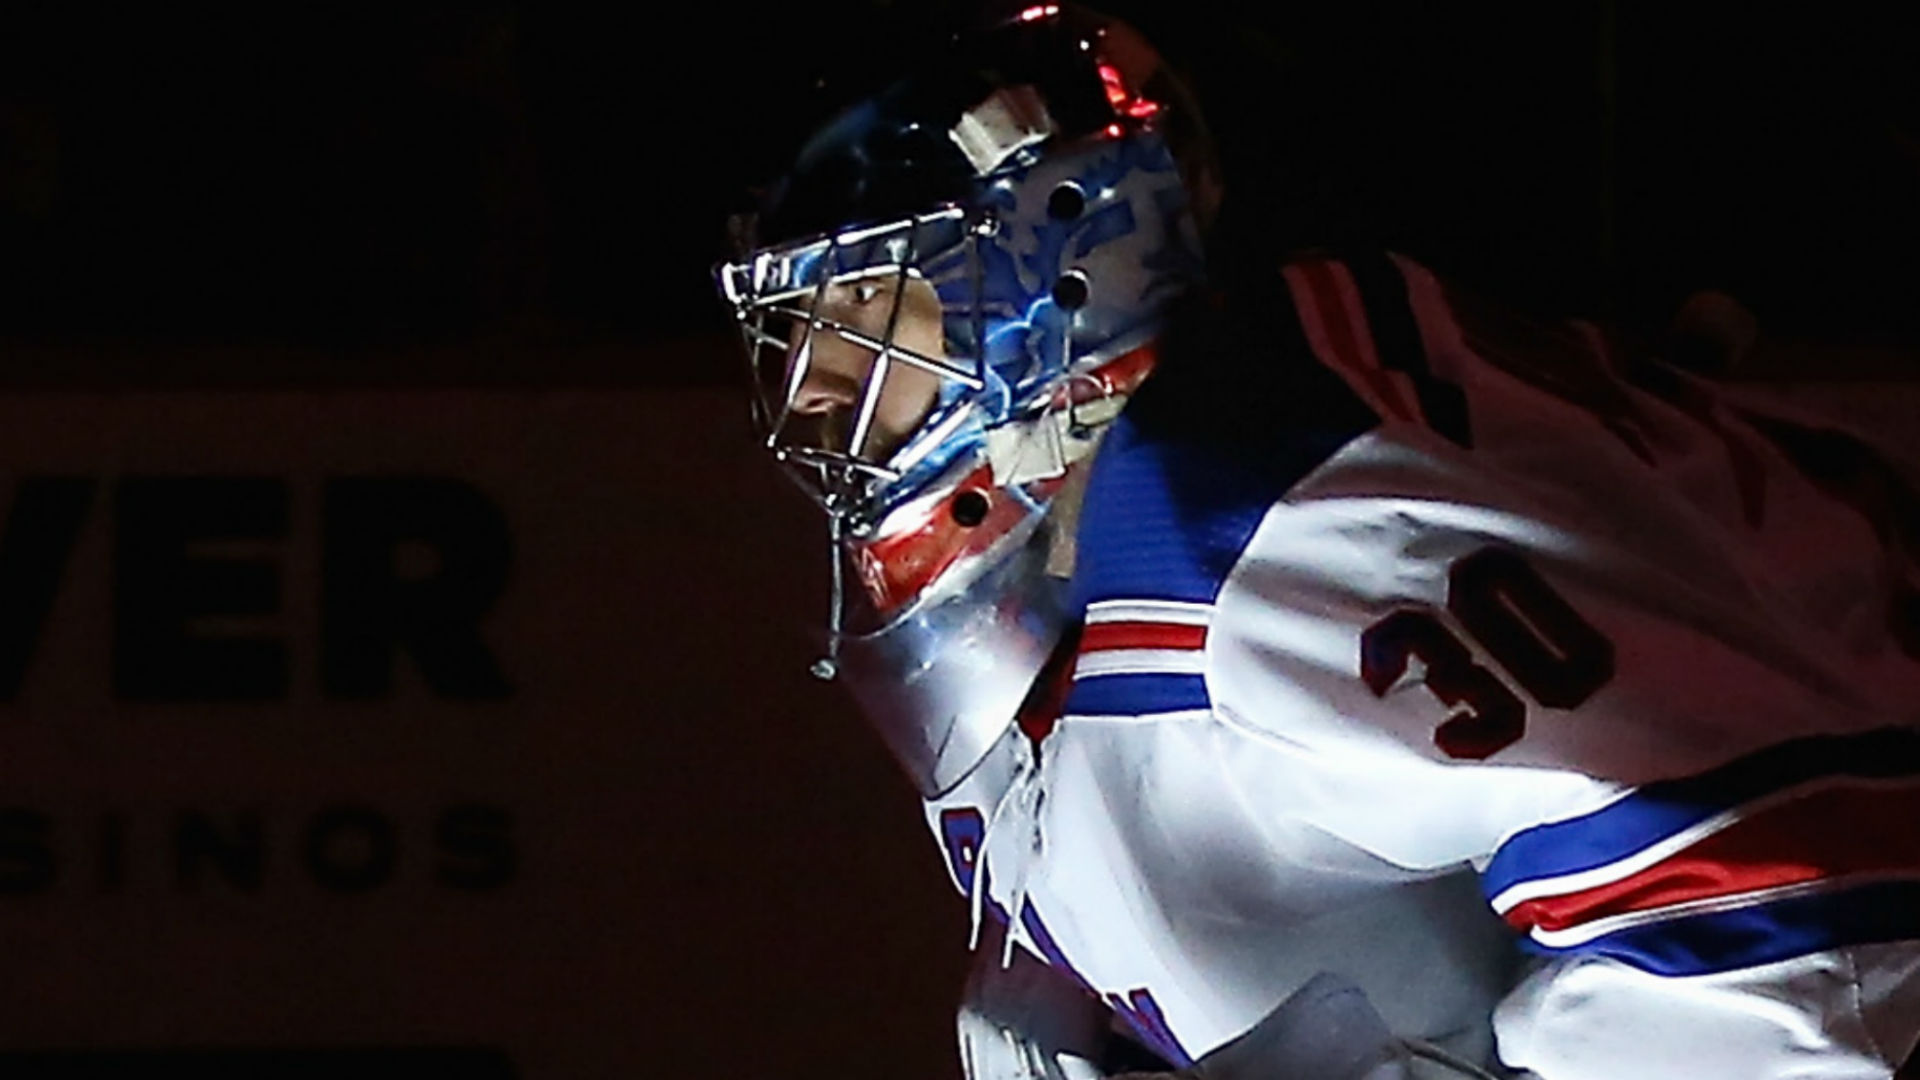 Could the Rangers trade Henrik Lundqvist? Breaking down the situation in New York